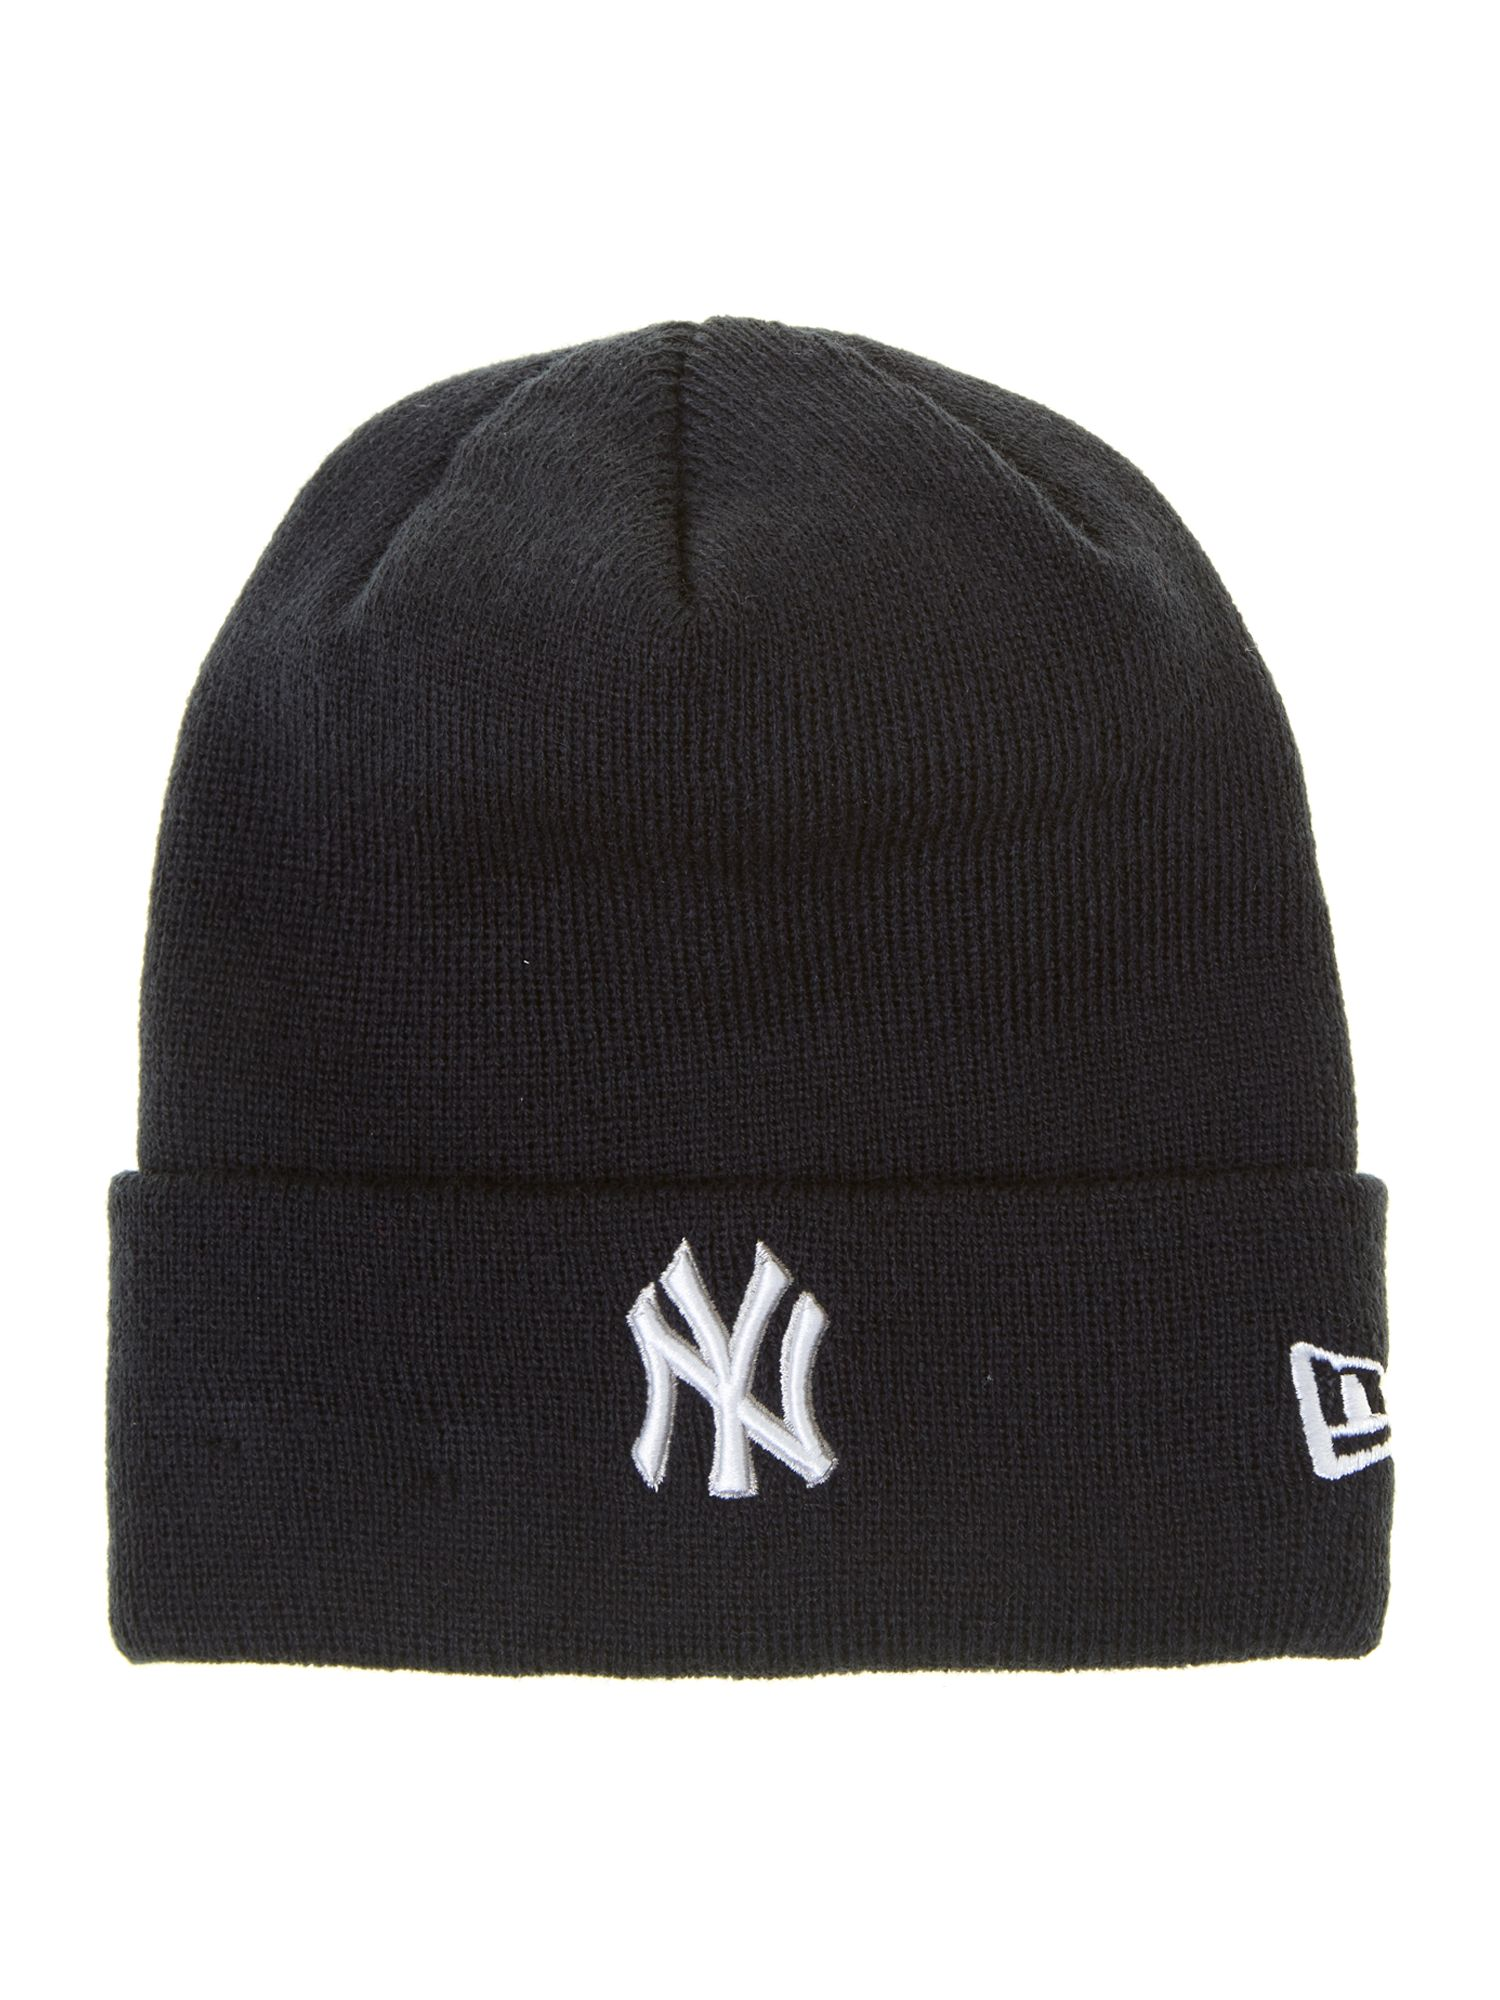 Youth cuff knit NY hat